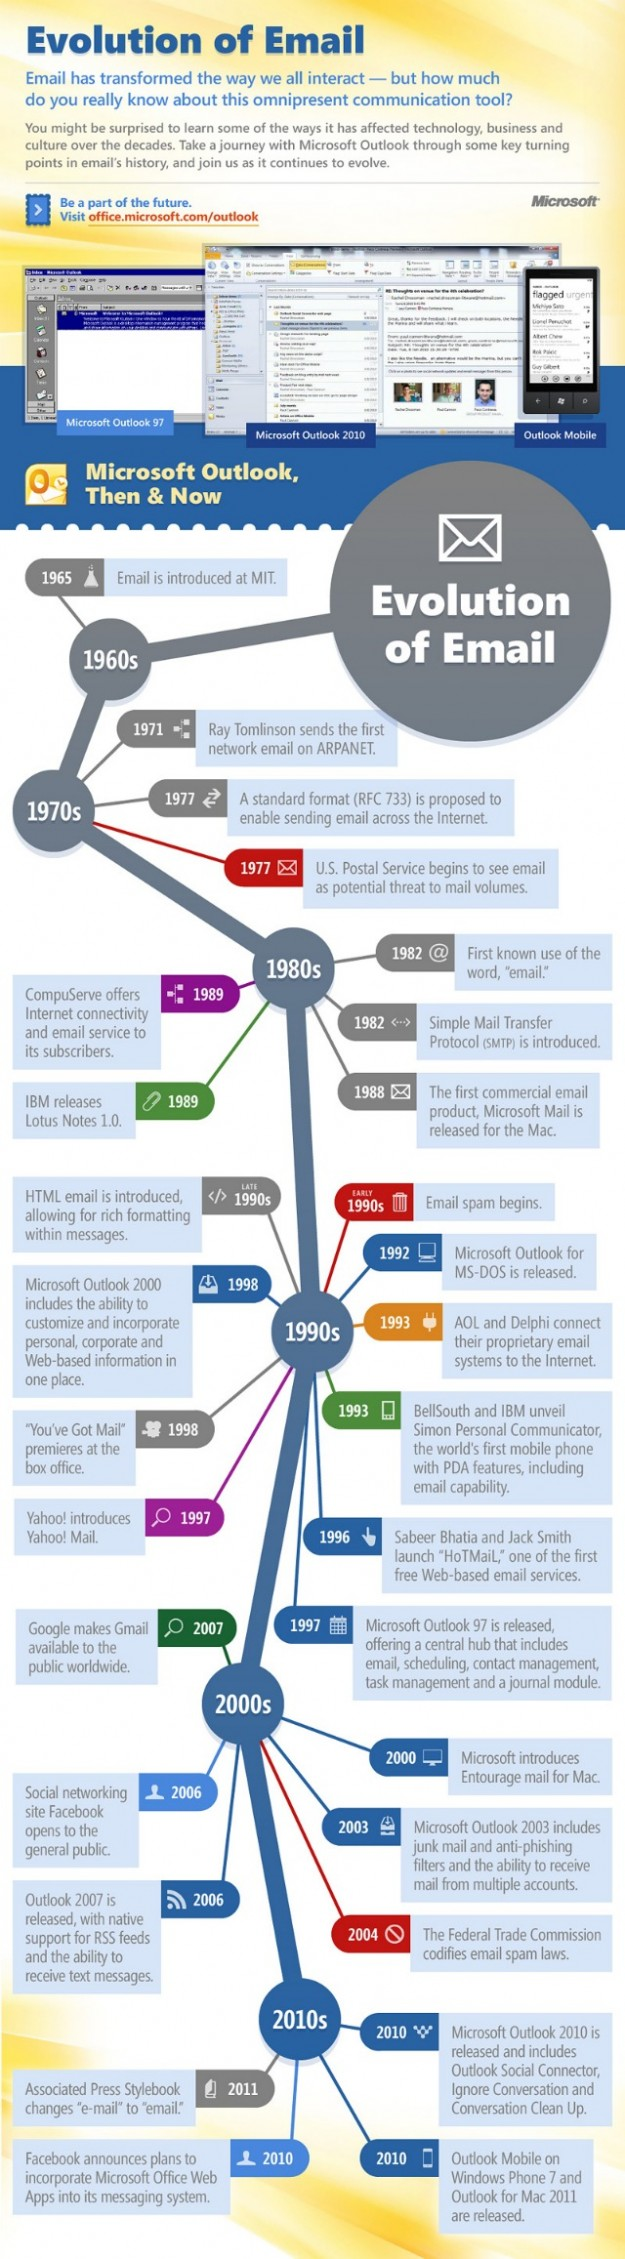 The Evolution Of Email (1965 — 2011) [INFOGRAPHIC]